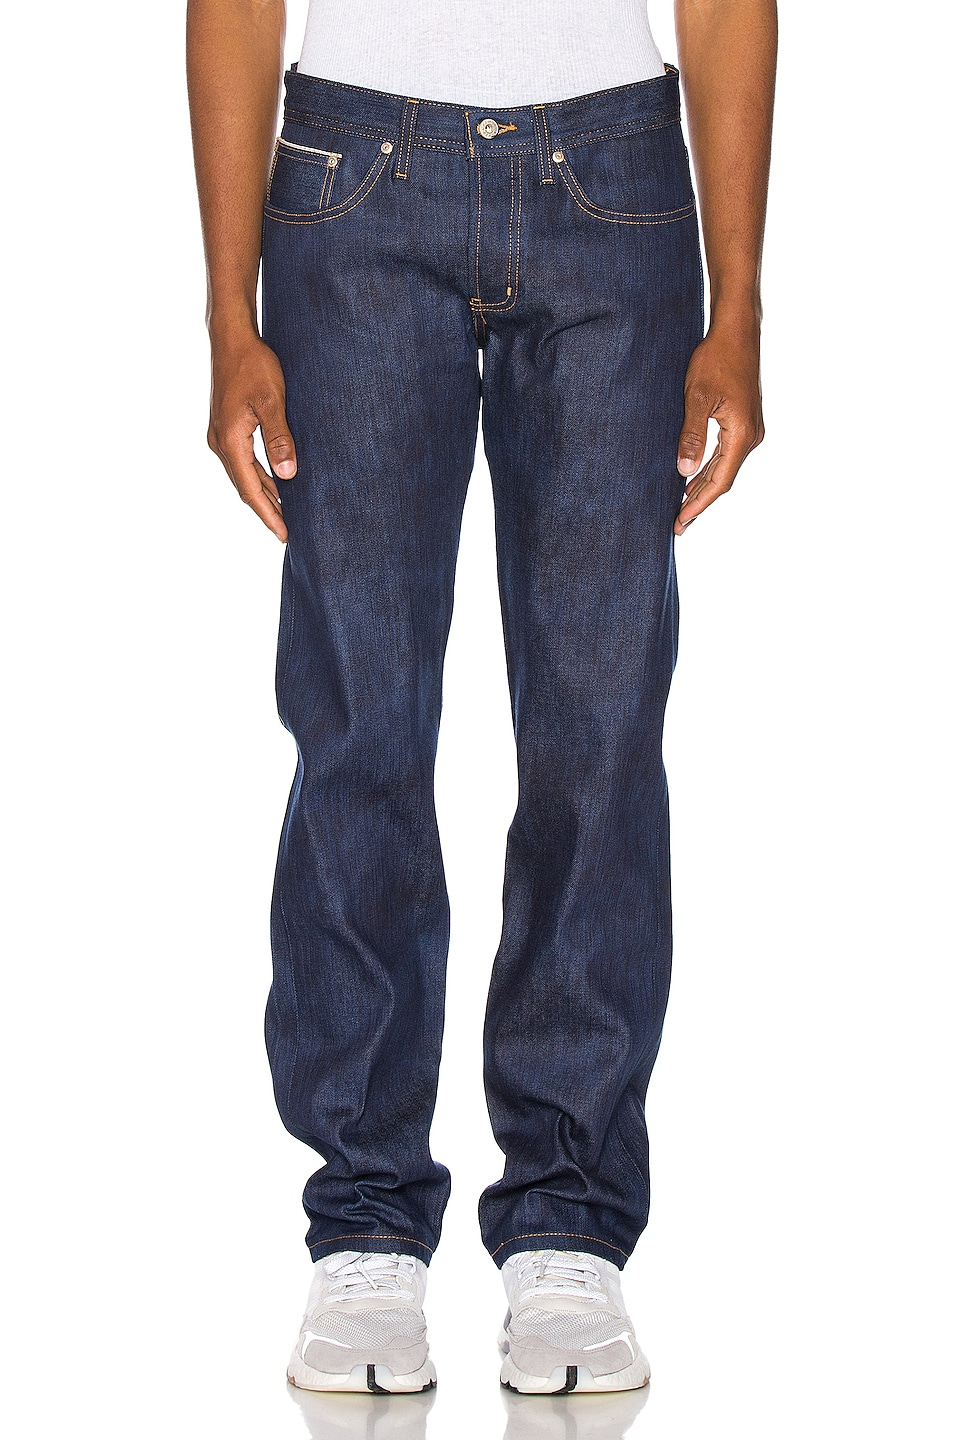 Image 1 of Naked & Famous Denim Weird Guy Jeans in Kasuri Stretch Selvedge